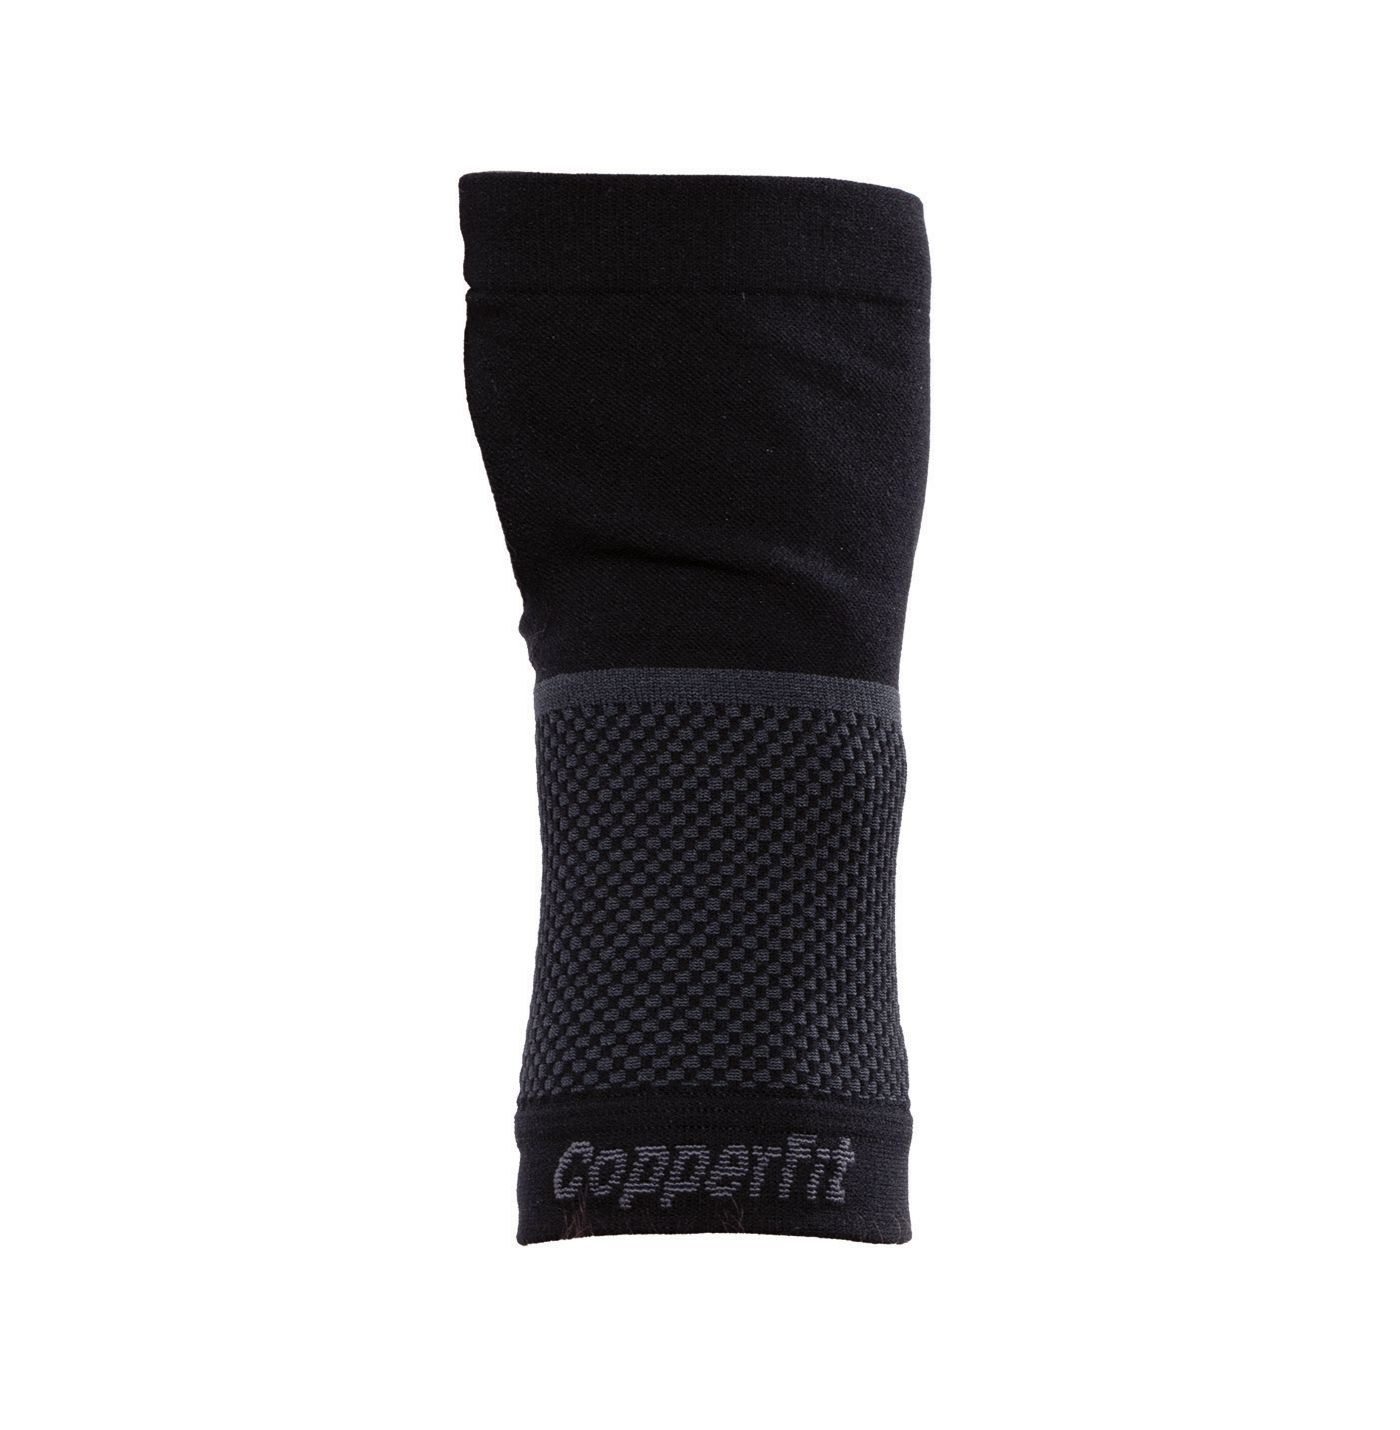 CopperFit Elite Wrist Sleeve